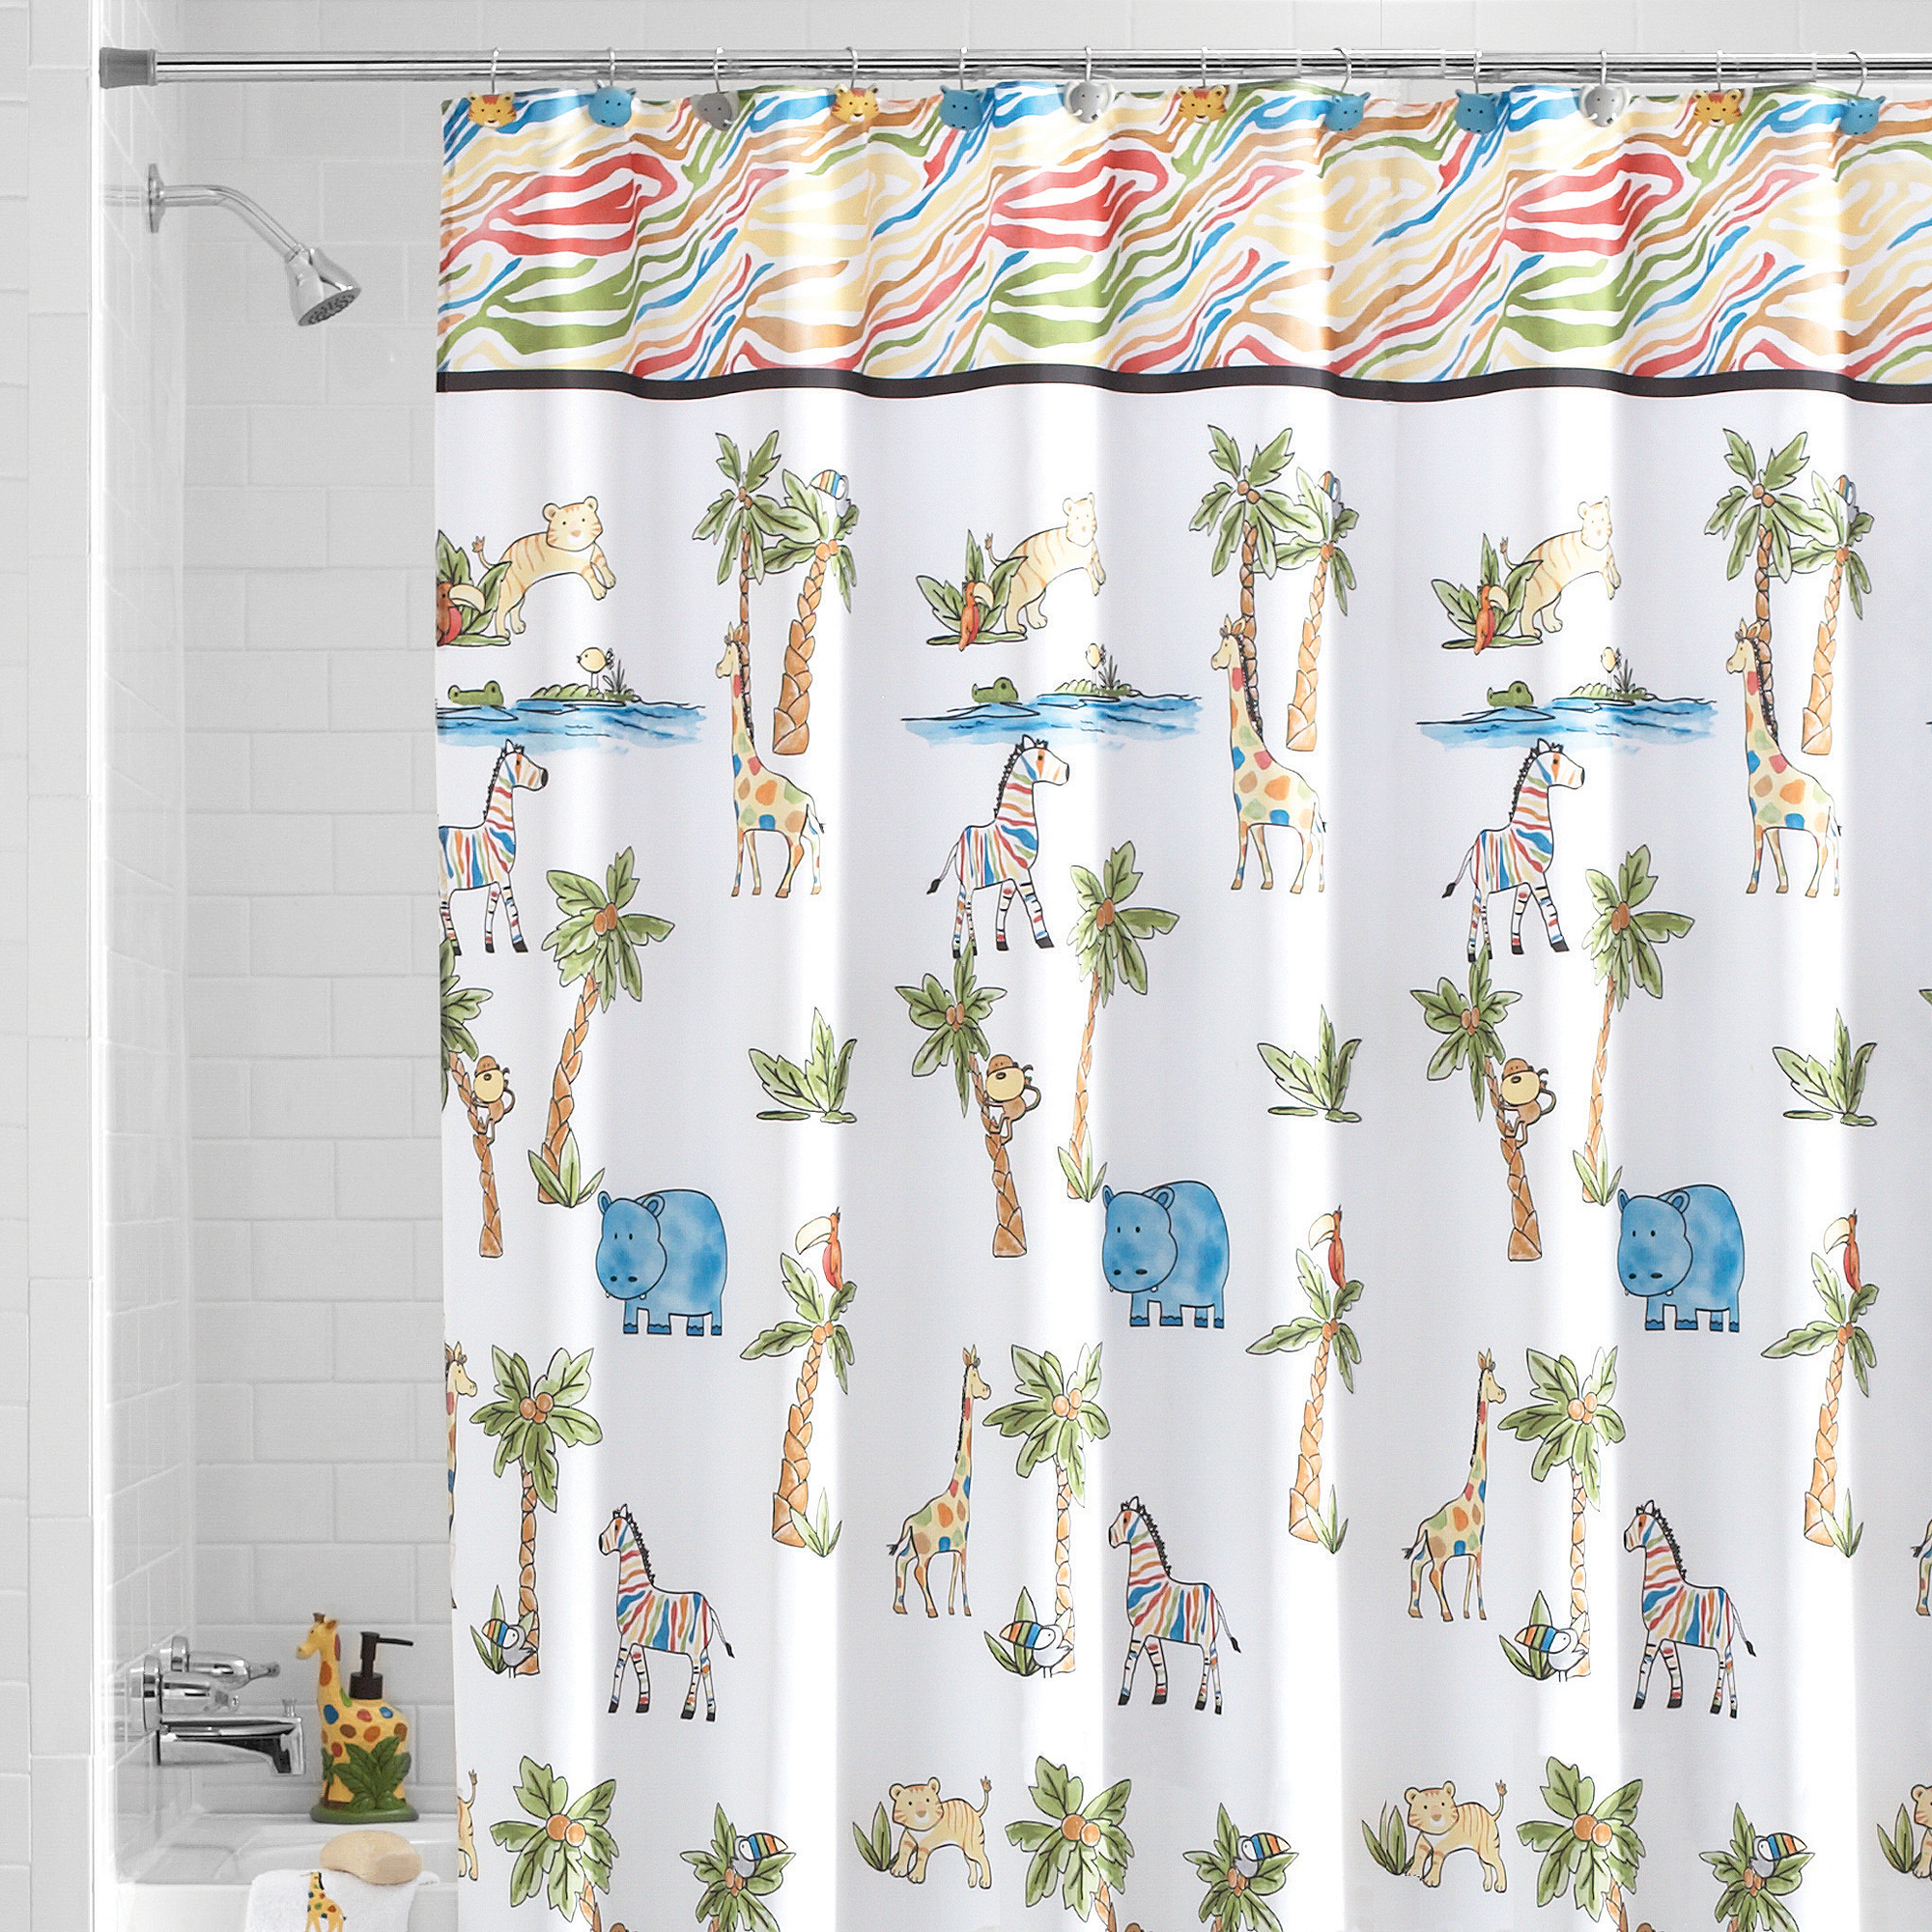 Safari bathroom decor for kids - Mainstays Safari Fabric Shower Curtain